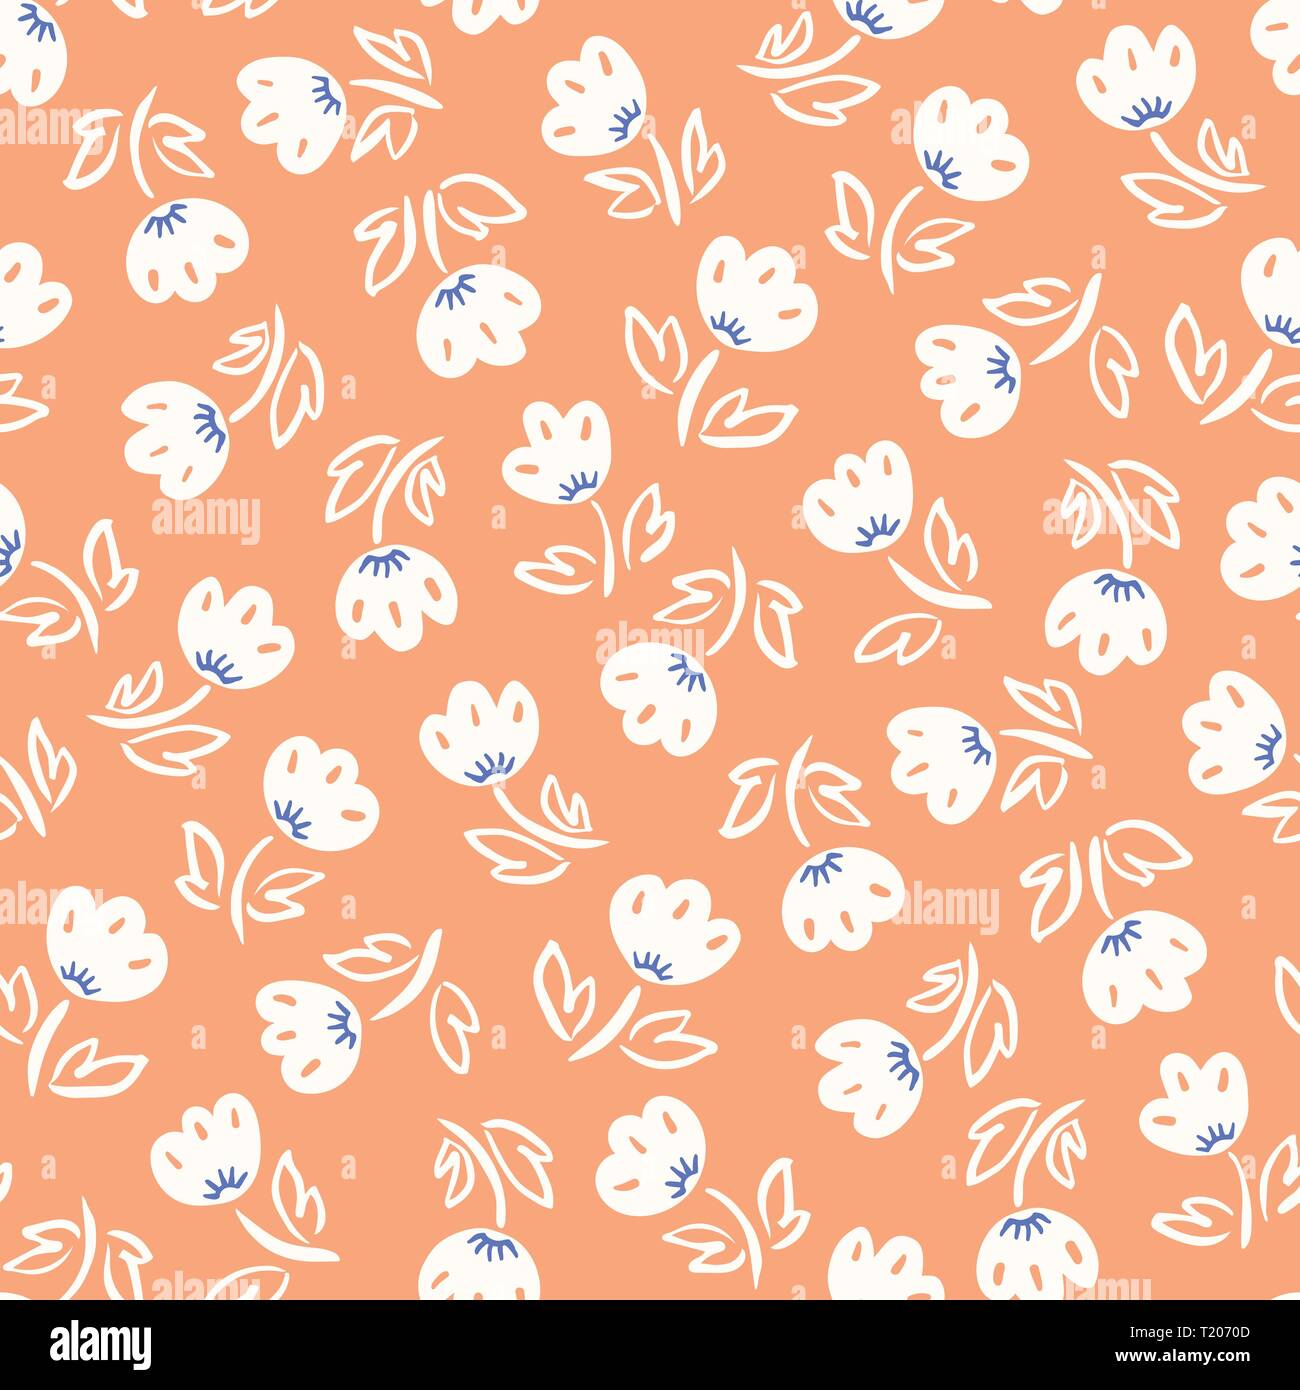 Cute abstract hand-drawn tulip flowers on coral background vector seamless pattern. Whimsical floral print. Simplistic ditsy blooms. Scandinavian mini - Stock Image